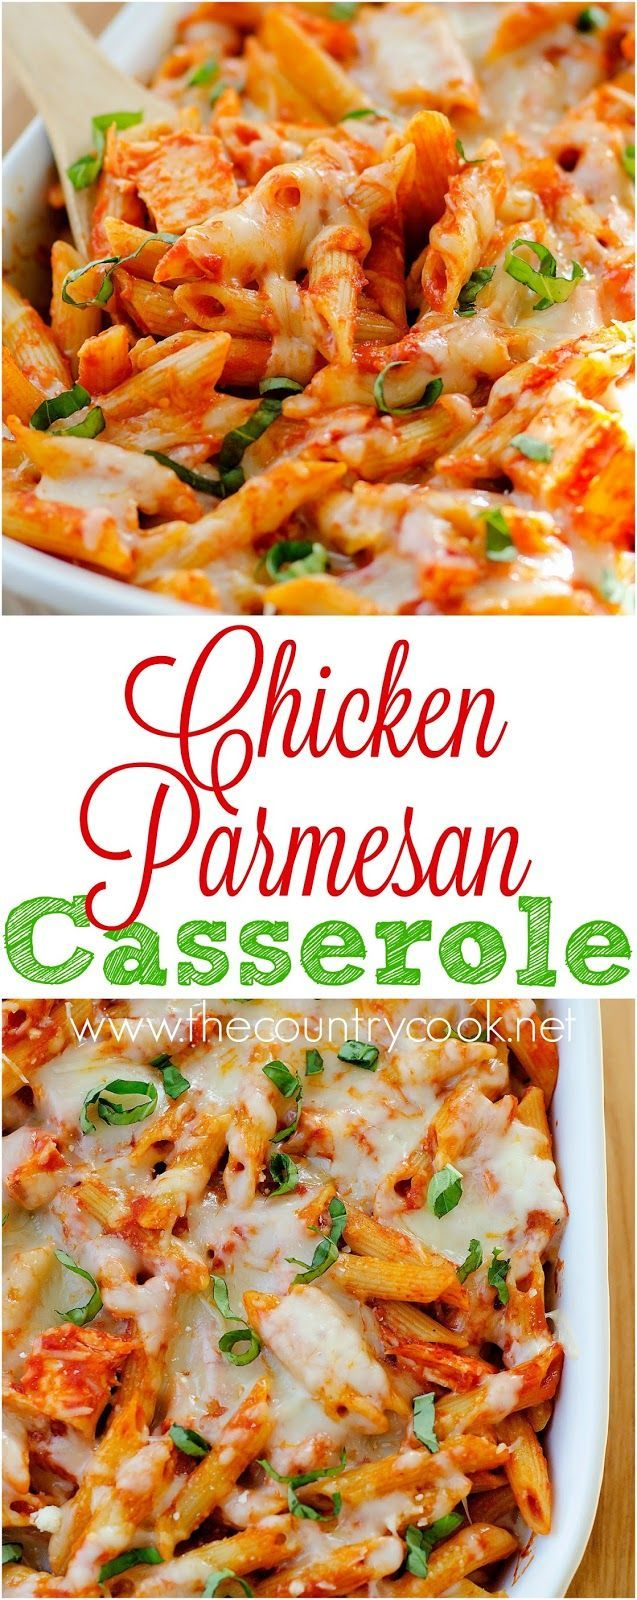 Chicken Parmesan Casserole recipe from Life in the Lofthouse at The Country Cook. Layers of cheesy pasta and chicken and marinara. I would use a store-bought rotisserie chicken to make this come toget